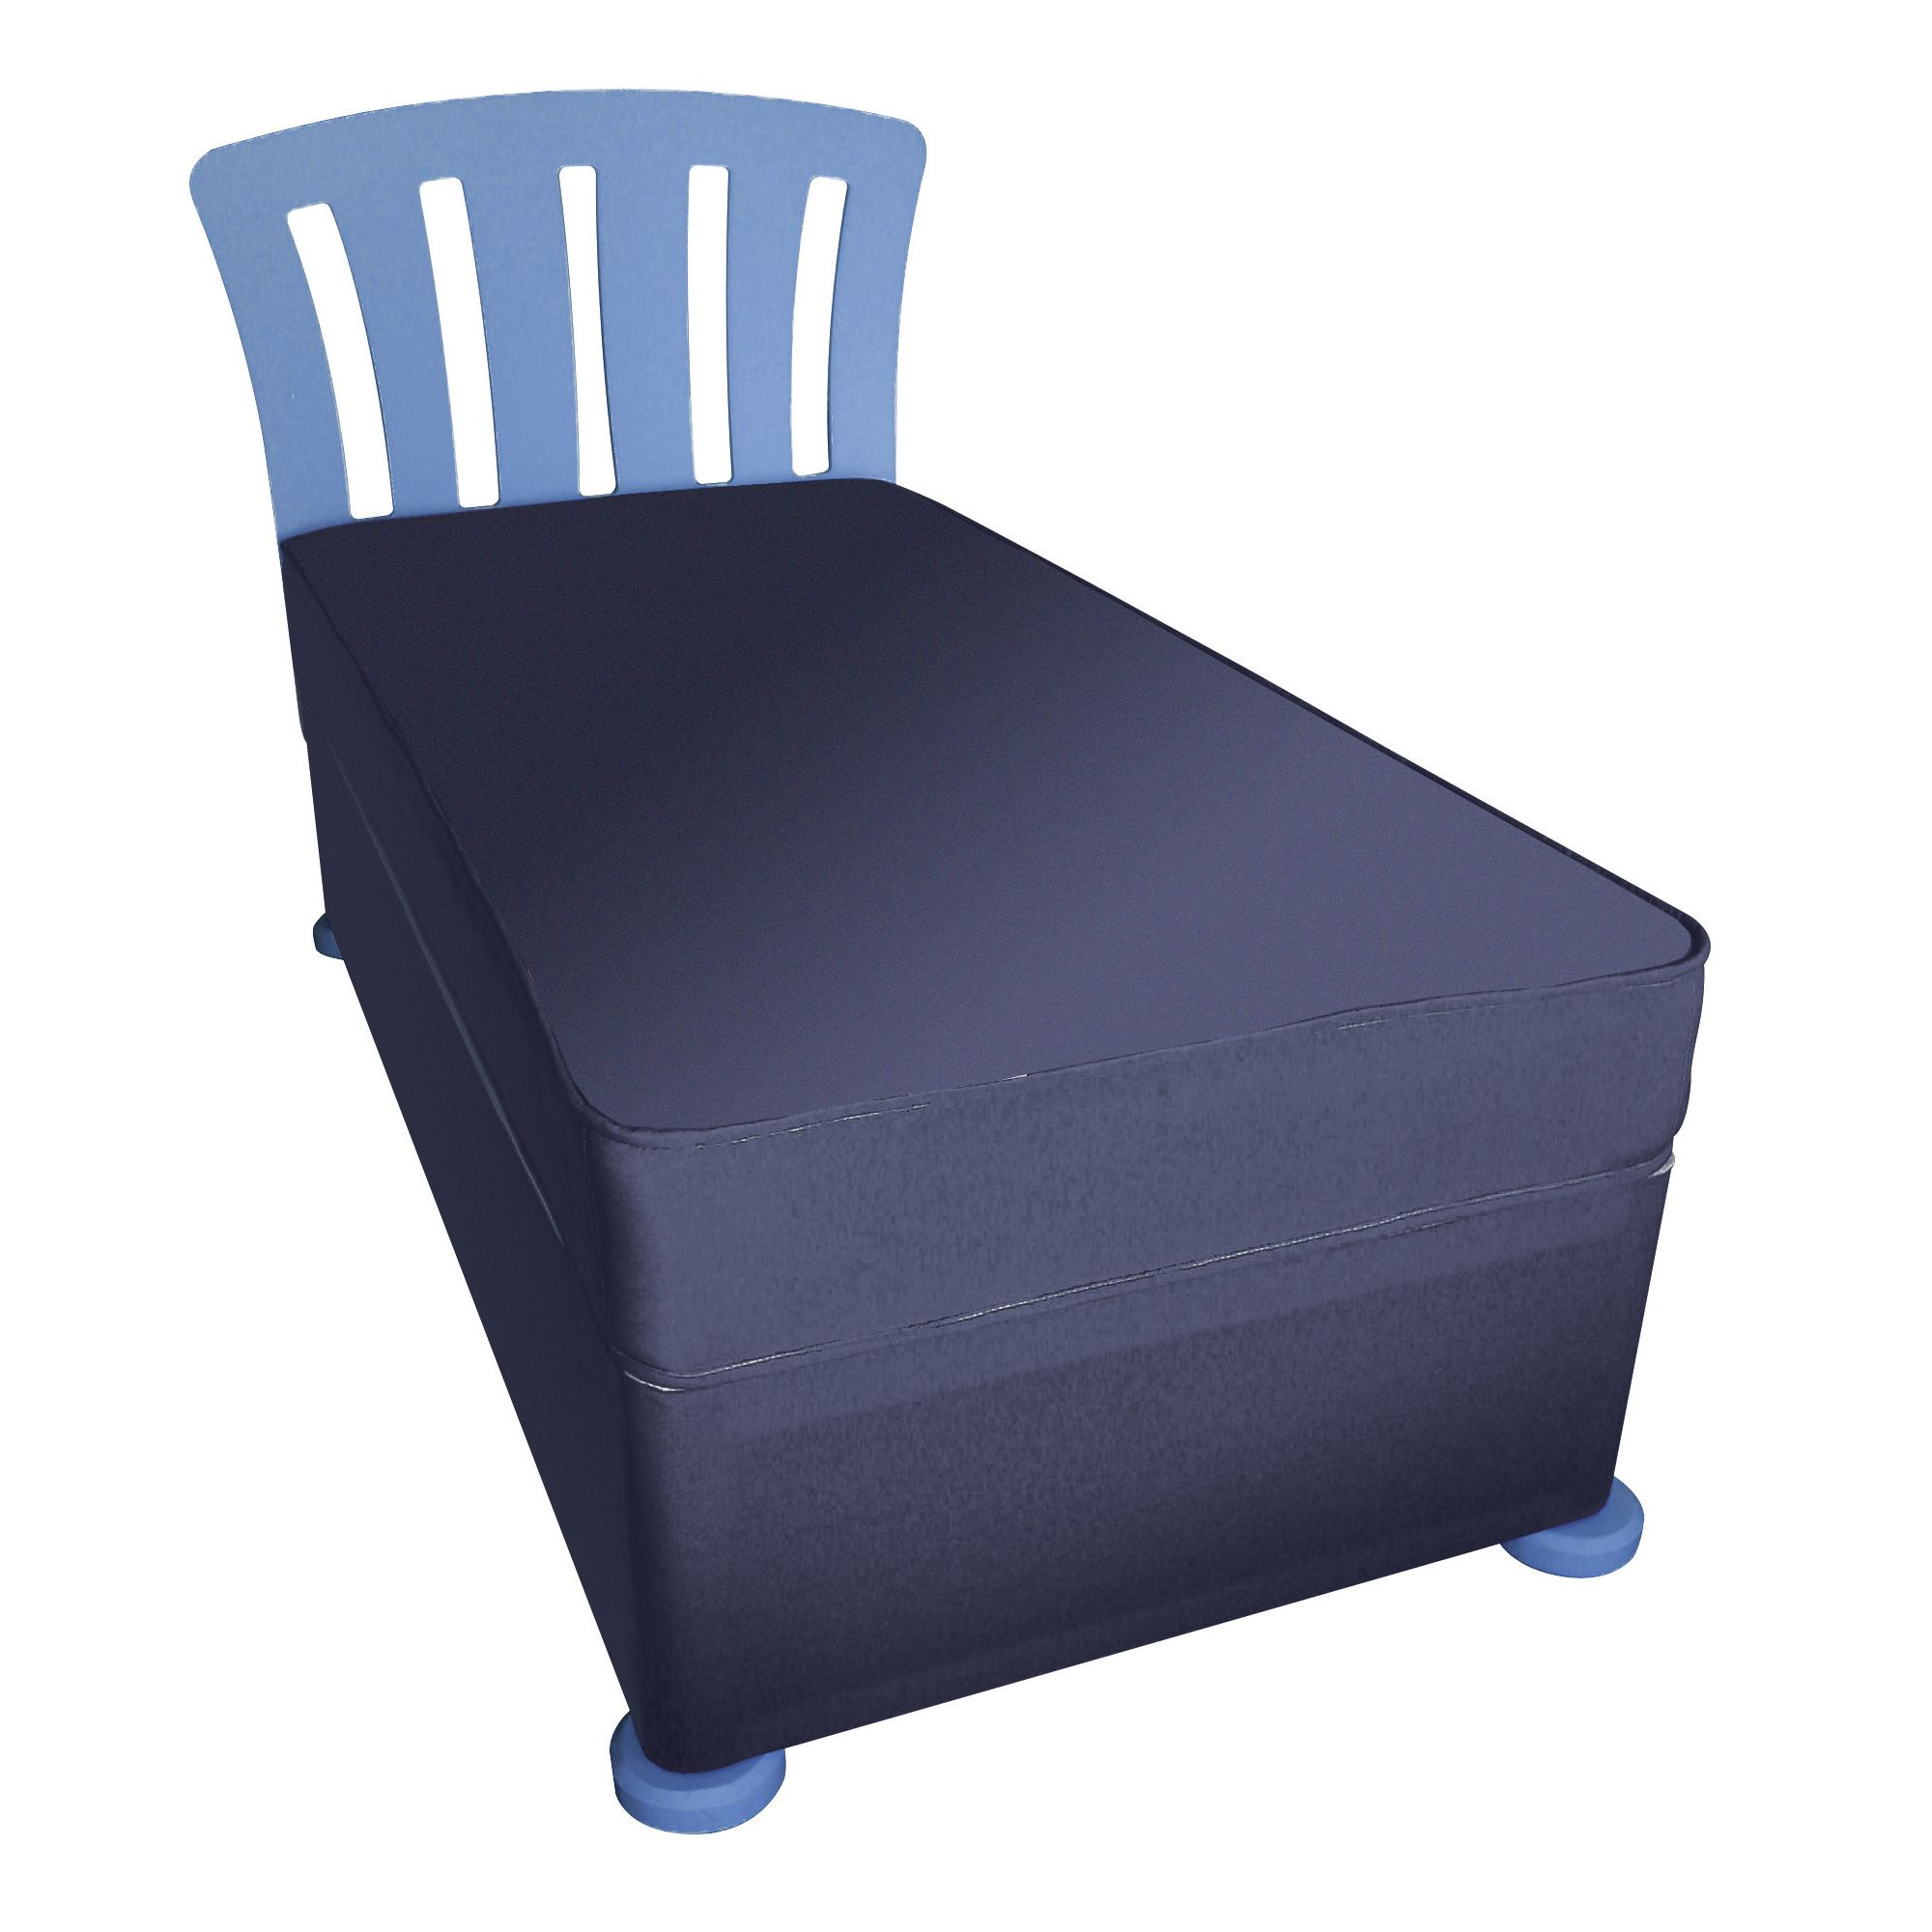 Kidsaw Single Divan with Mattress, Headboard and Bunfeet - Blue at Tesco Direct